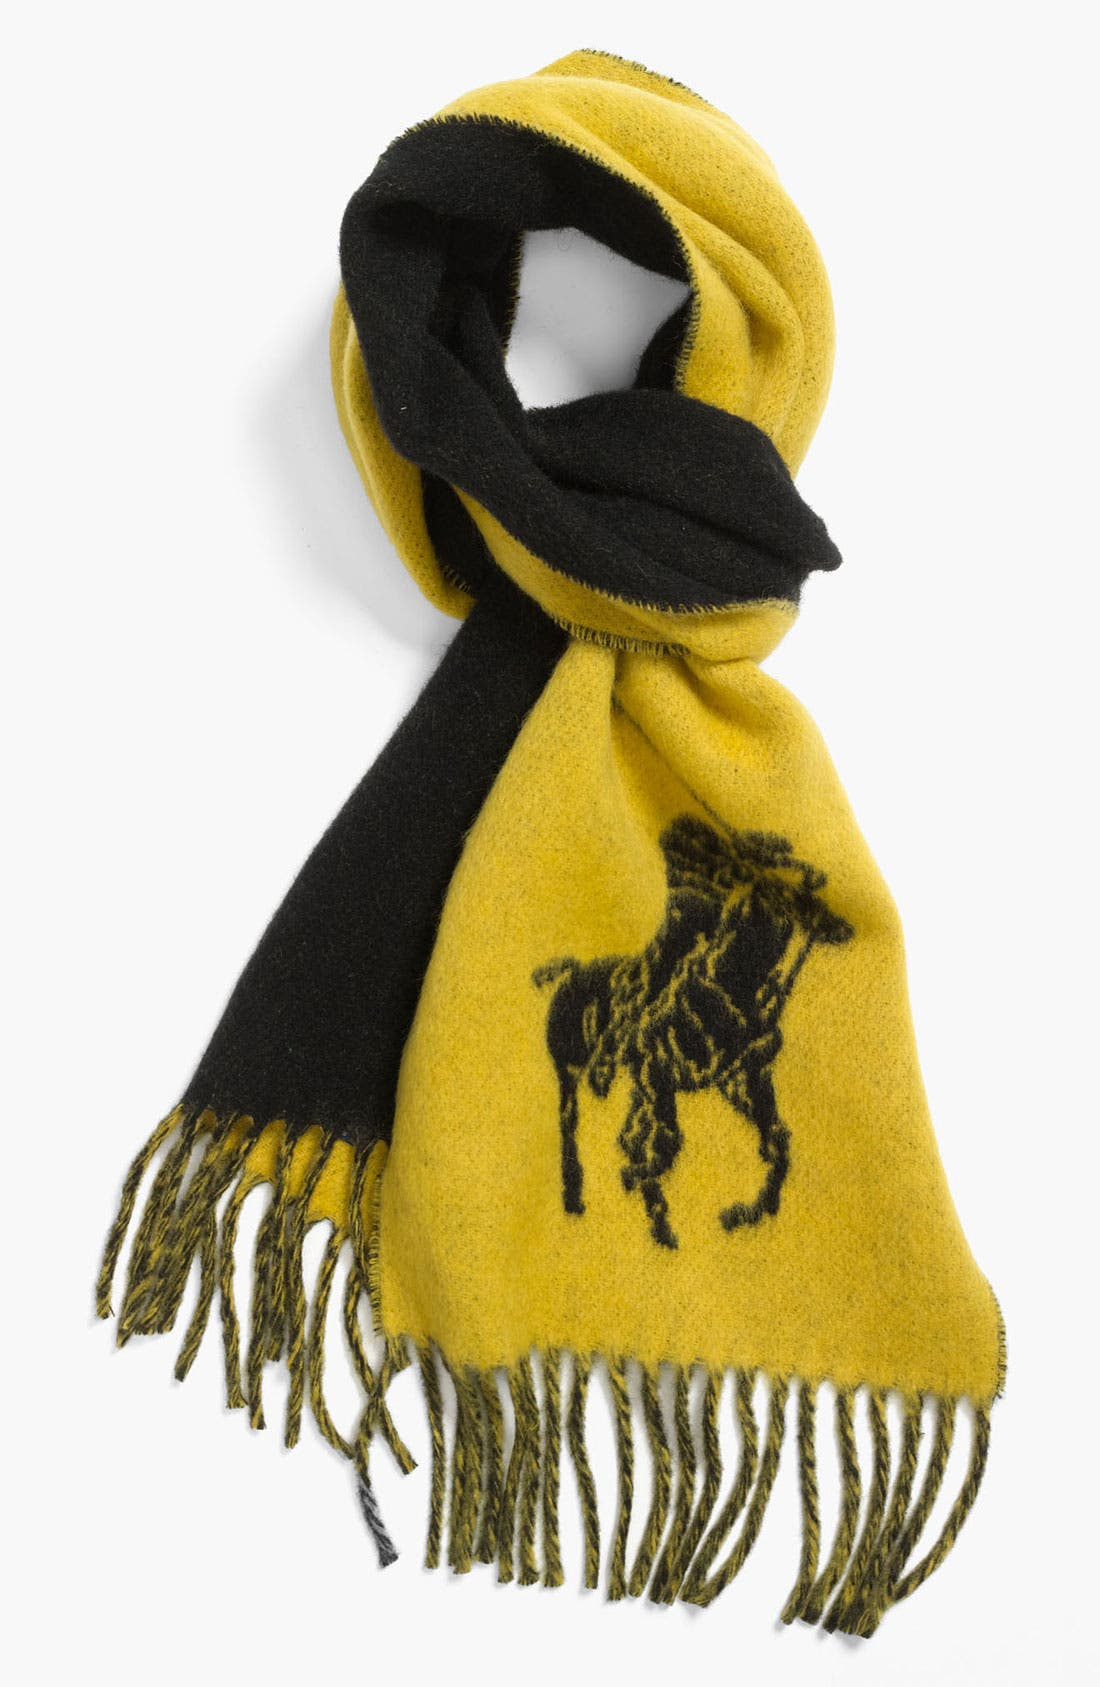 Alternate Image 1 Selected - Polo Ralph Lauren 'Big Pony' Wool Blend Scarf